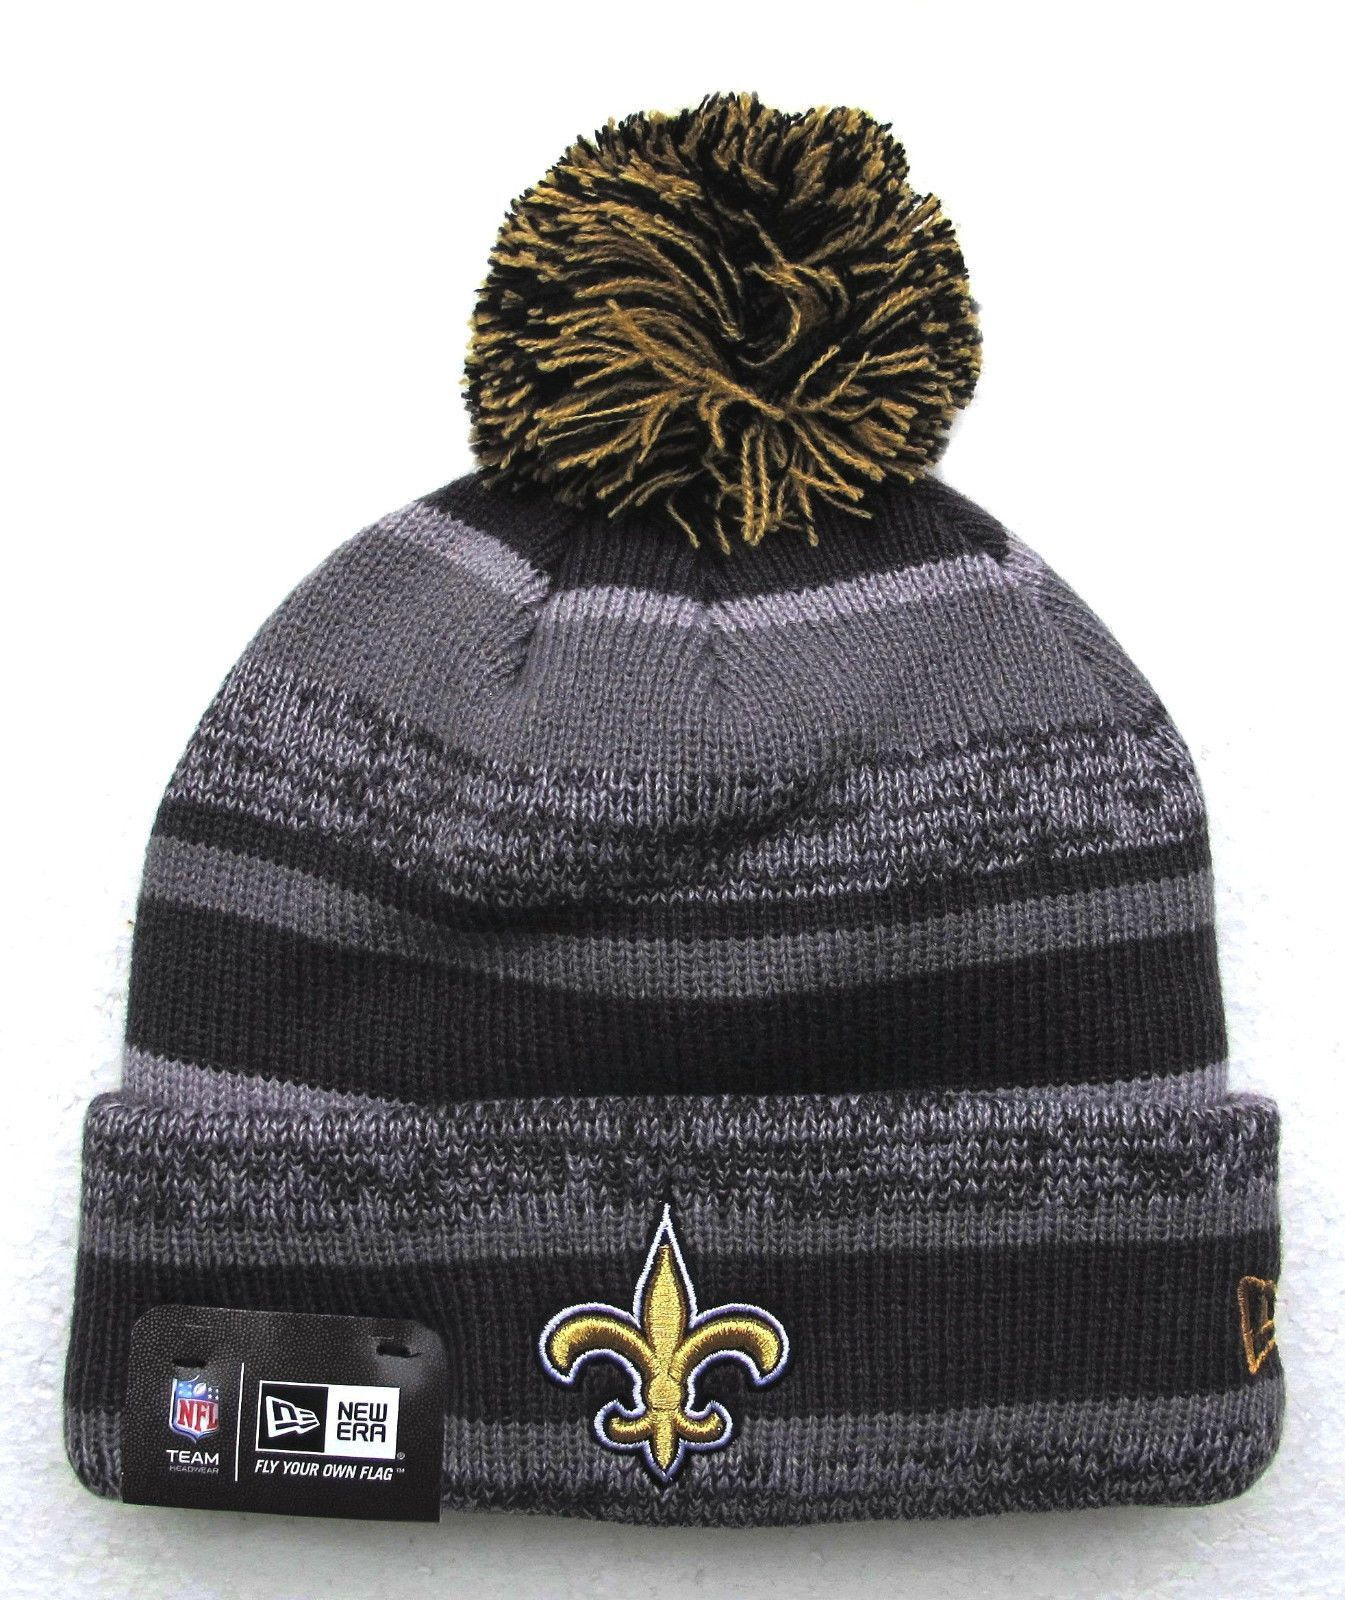 19106f37d59 Up for Sale is a New Orleans Saints Knit Pom winter hat by New Era ...